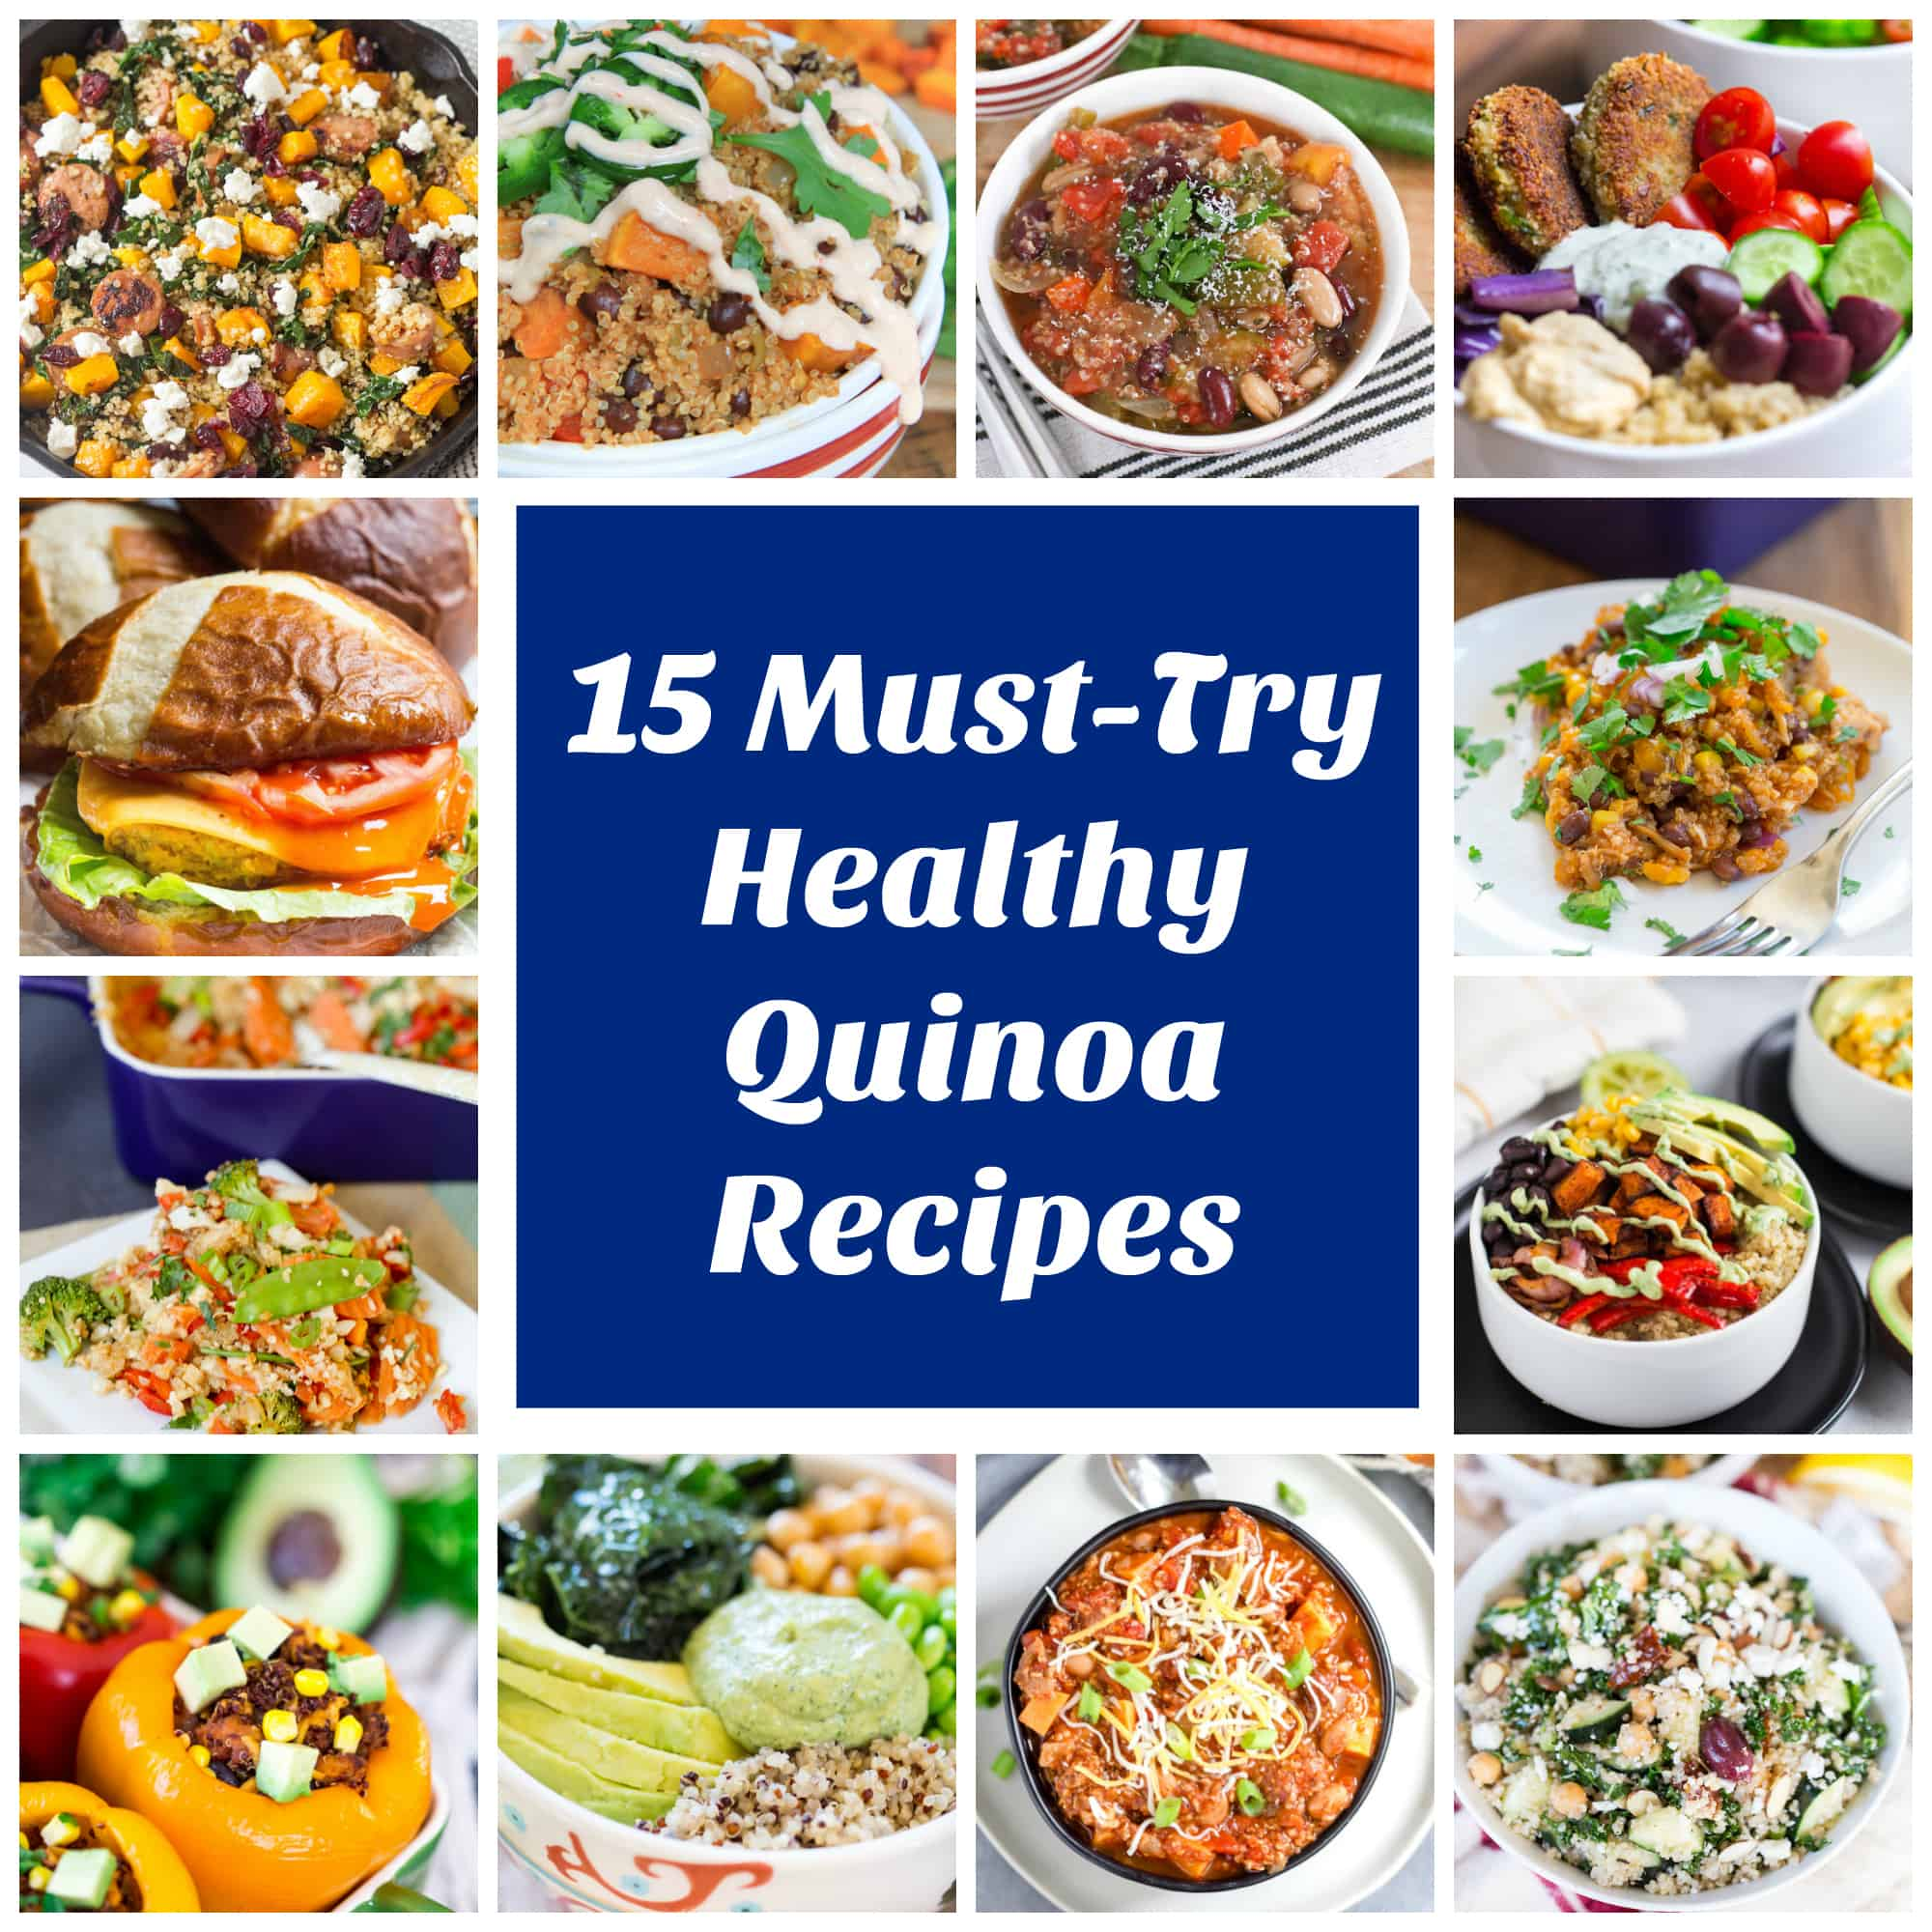 15 Must Try Healthy Quinoa Recipes